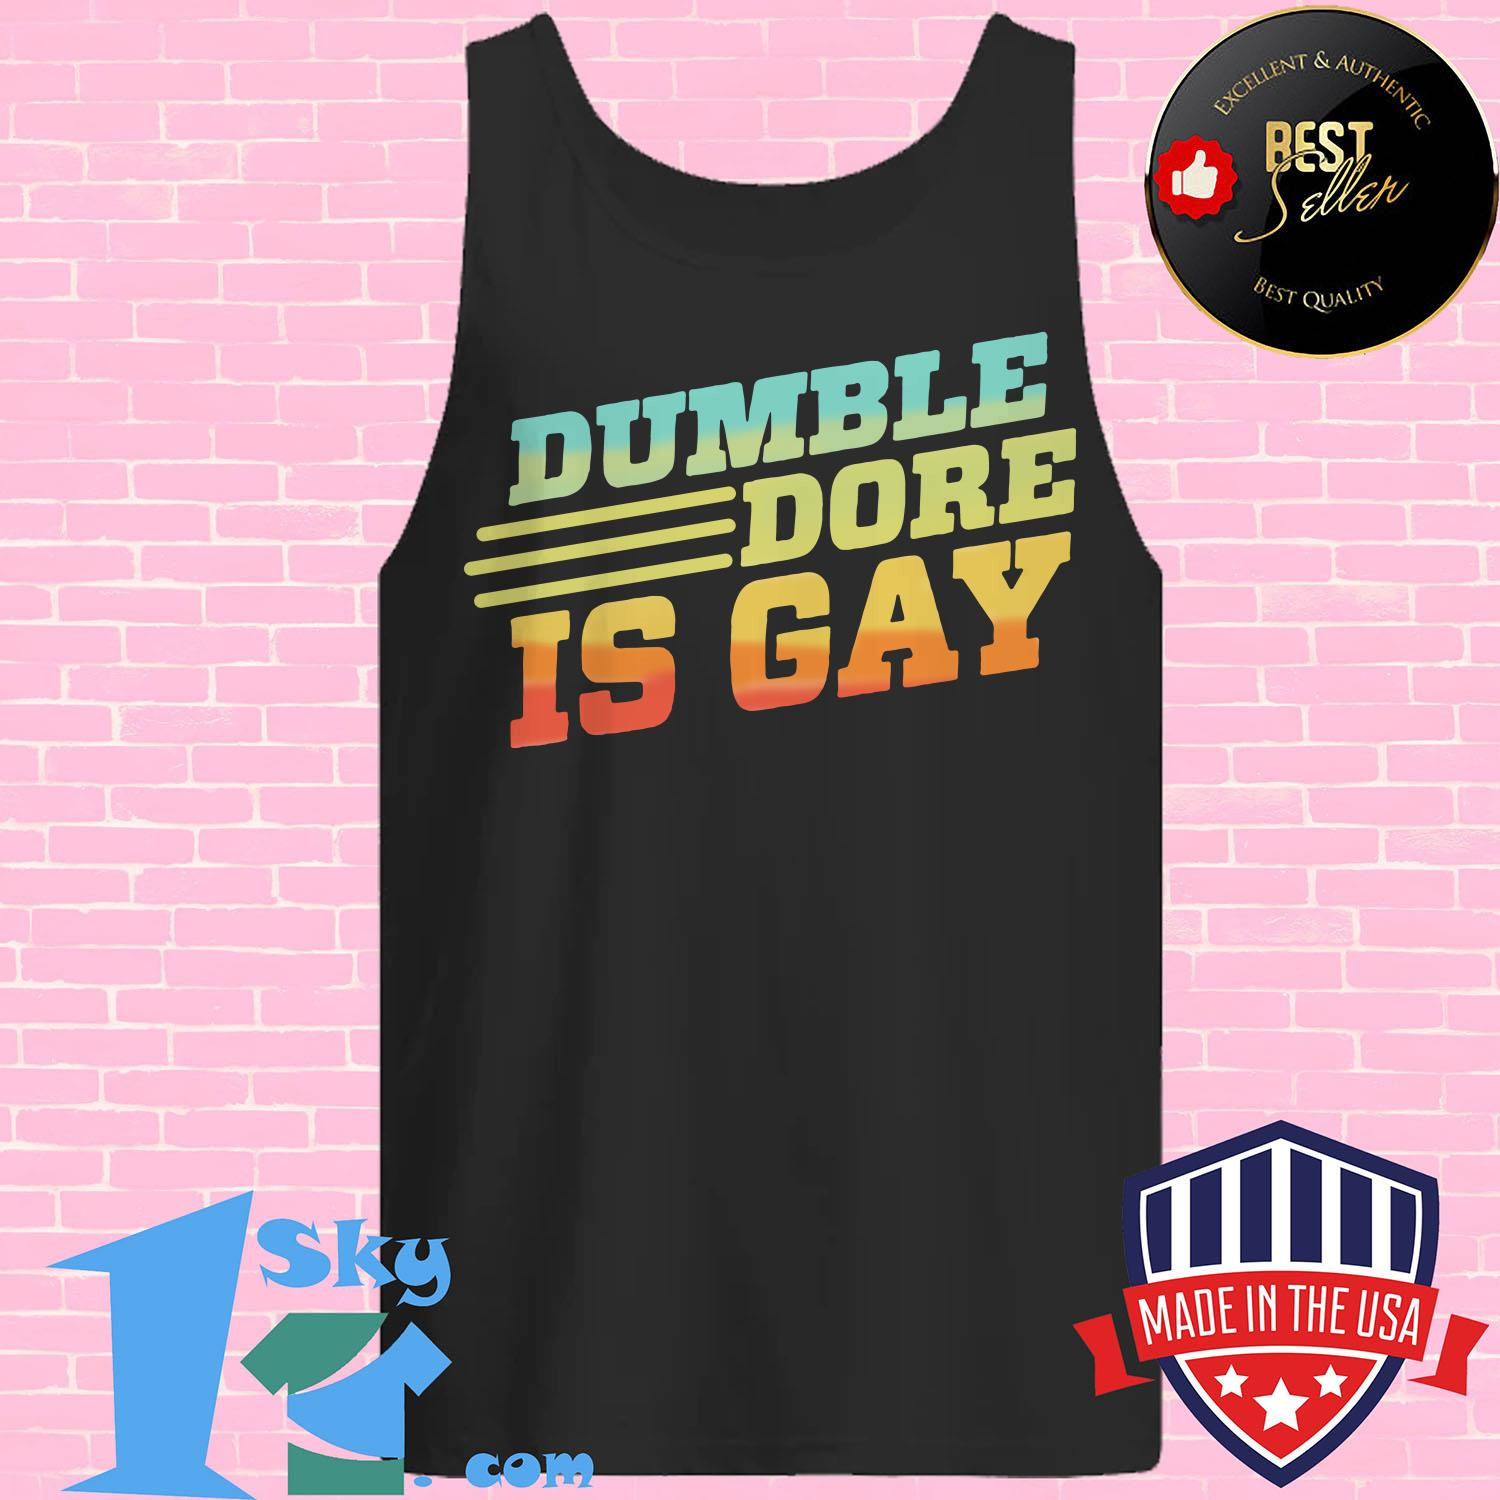 dumbledore is gay expecto equality tank top - Dumbledore Is Gay Expecto Equality shirt